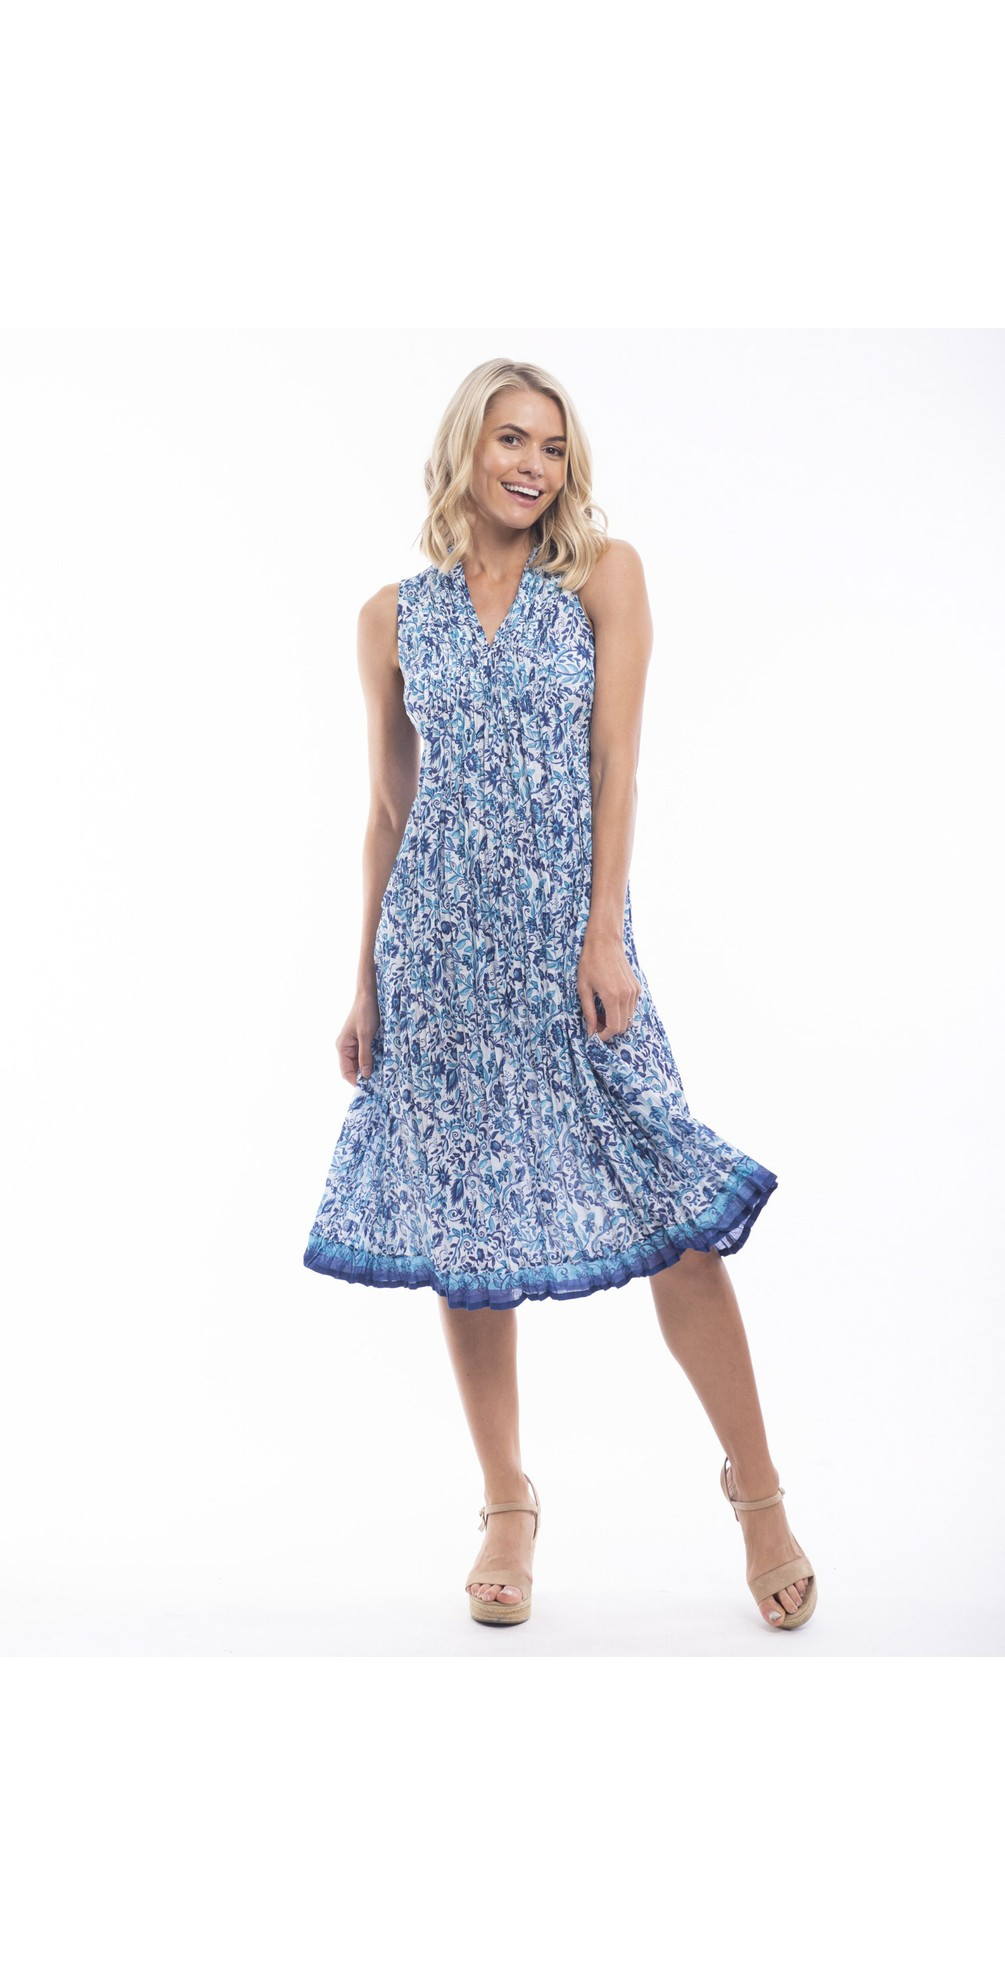 Tenerife Easyfit Dress main image